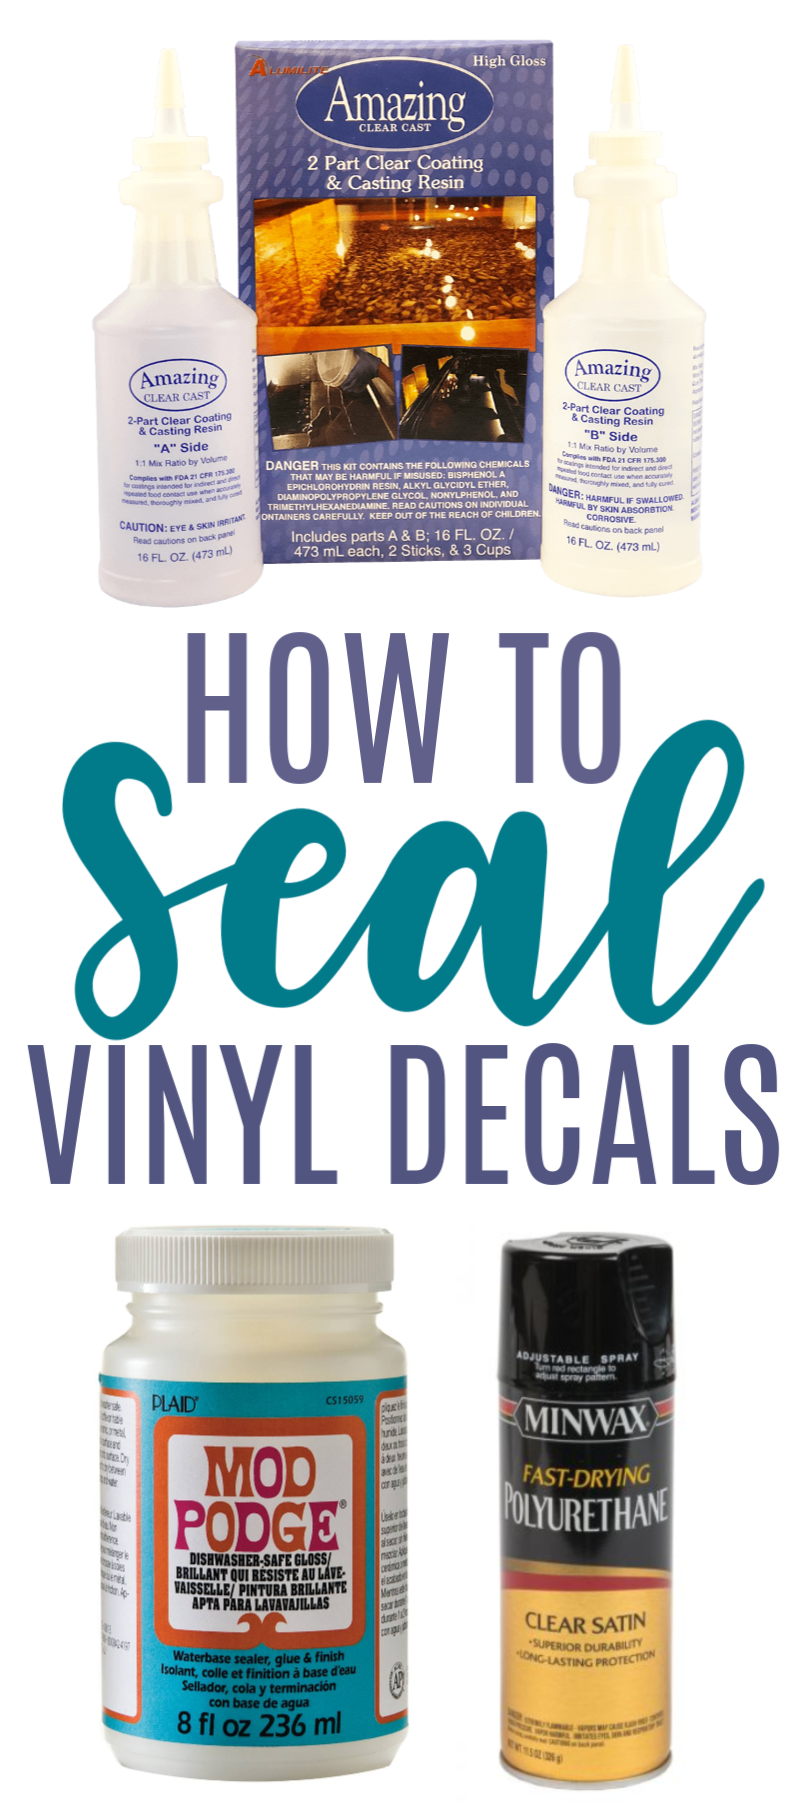 How To Seal Vinyl Decals - Makers Gonna Learn #cricutvinylprojects